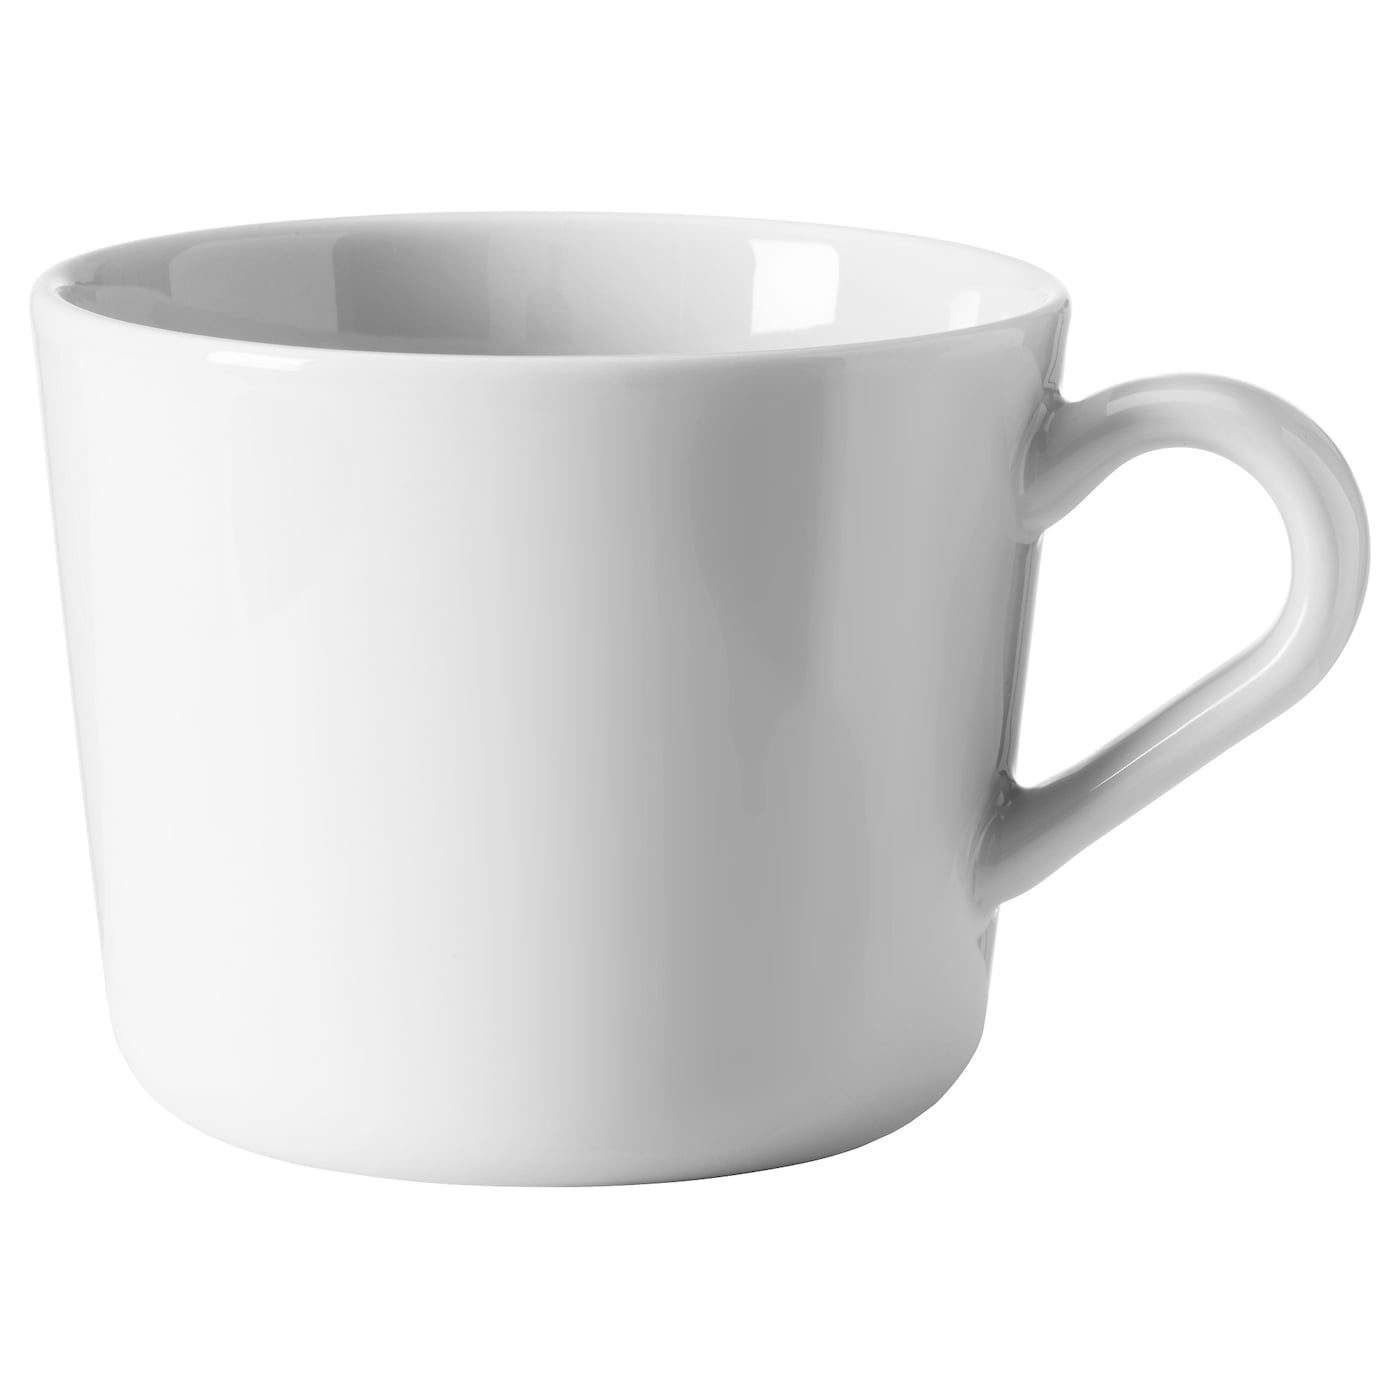 IKEA IKEA 365+ mug Made of feldspar porcelain, which makes the mug impact resistant and durable.